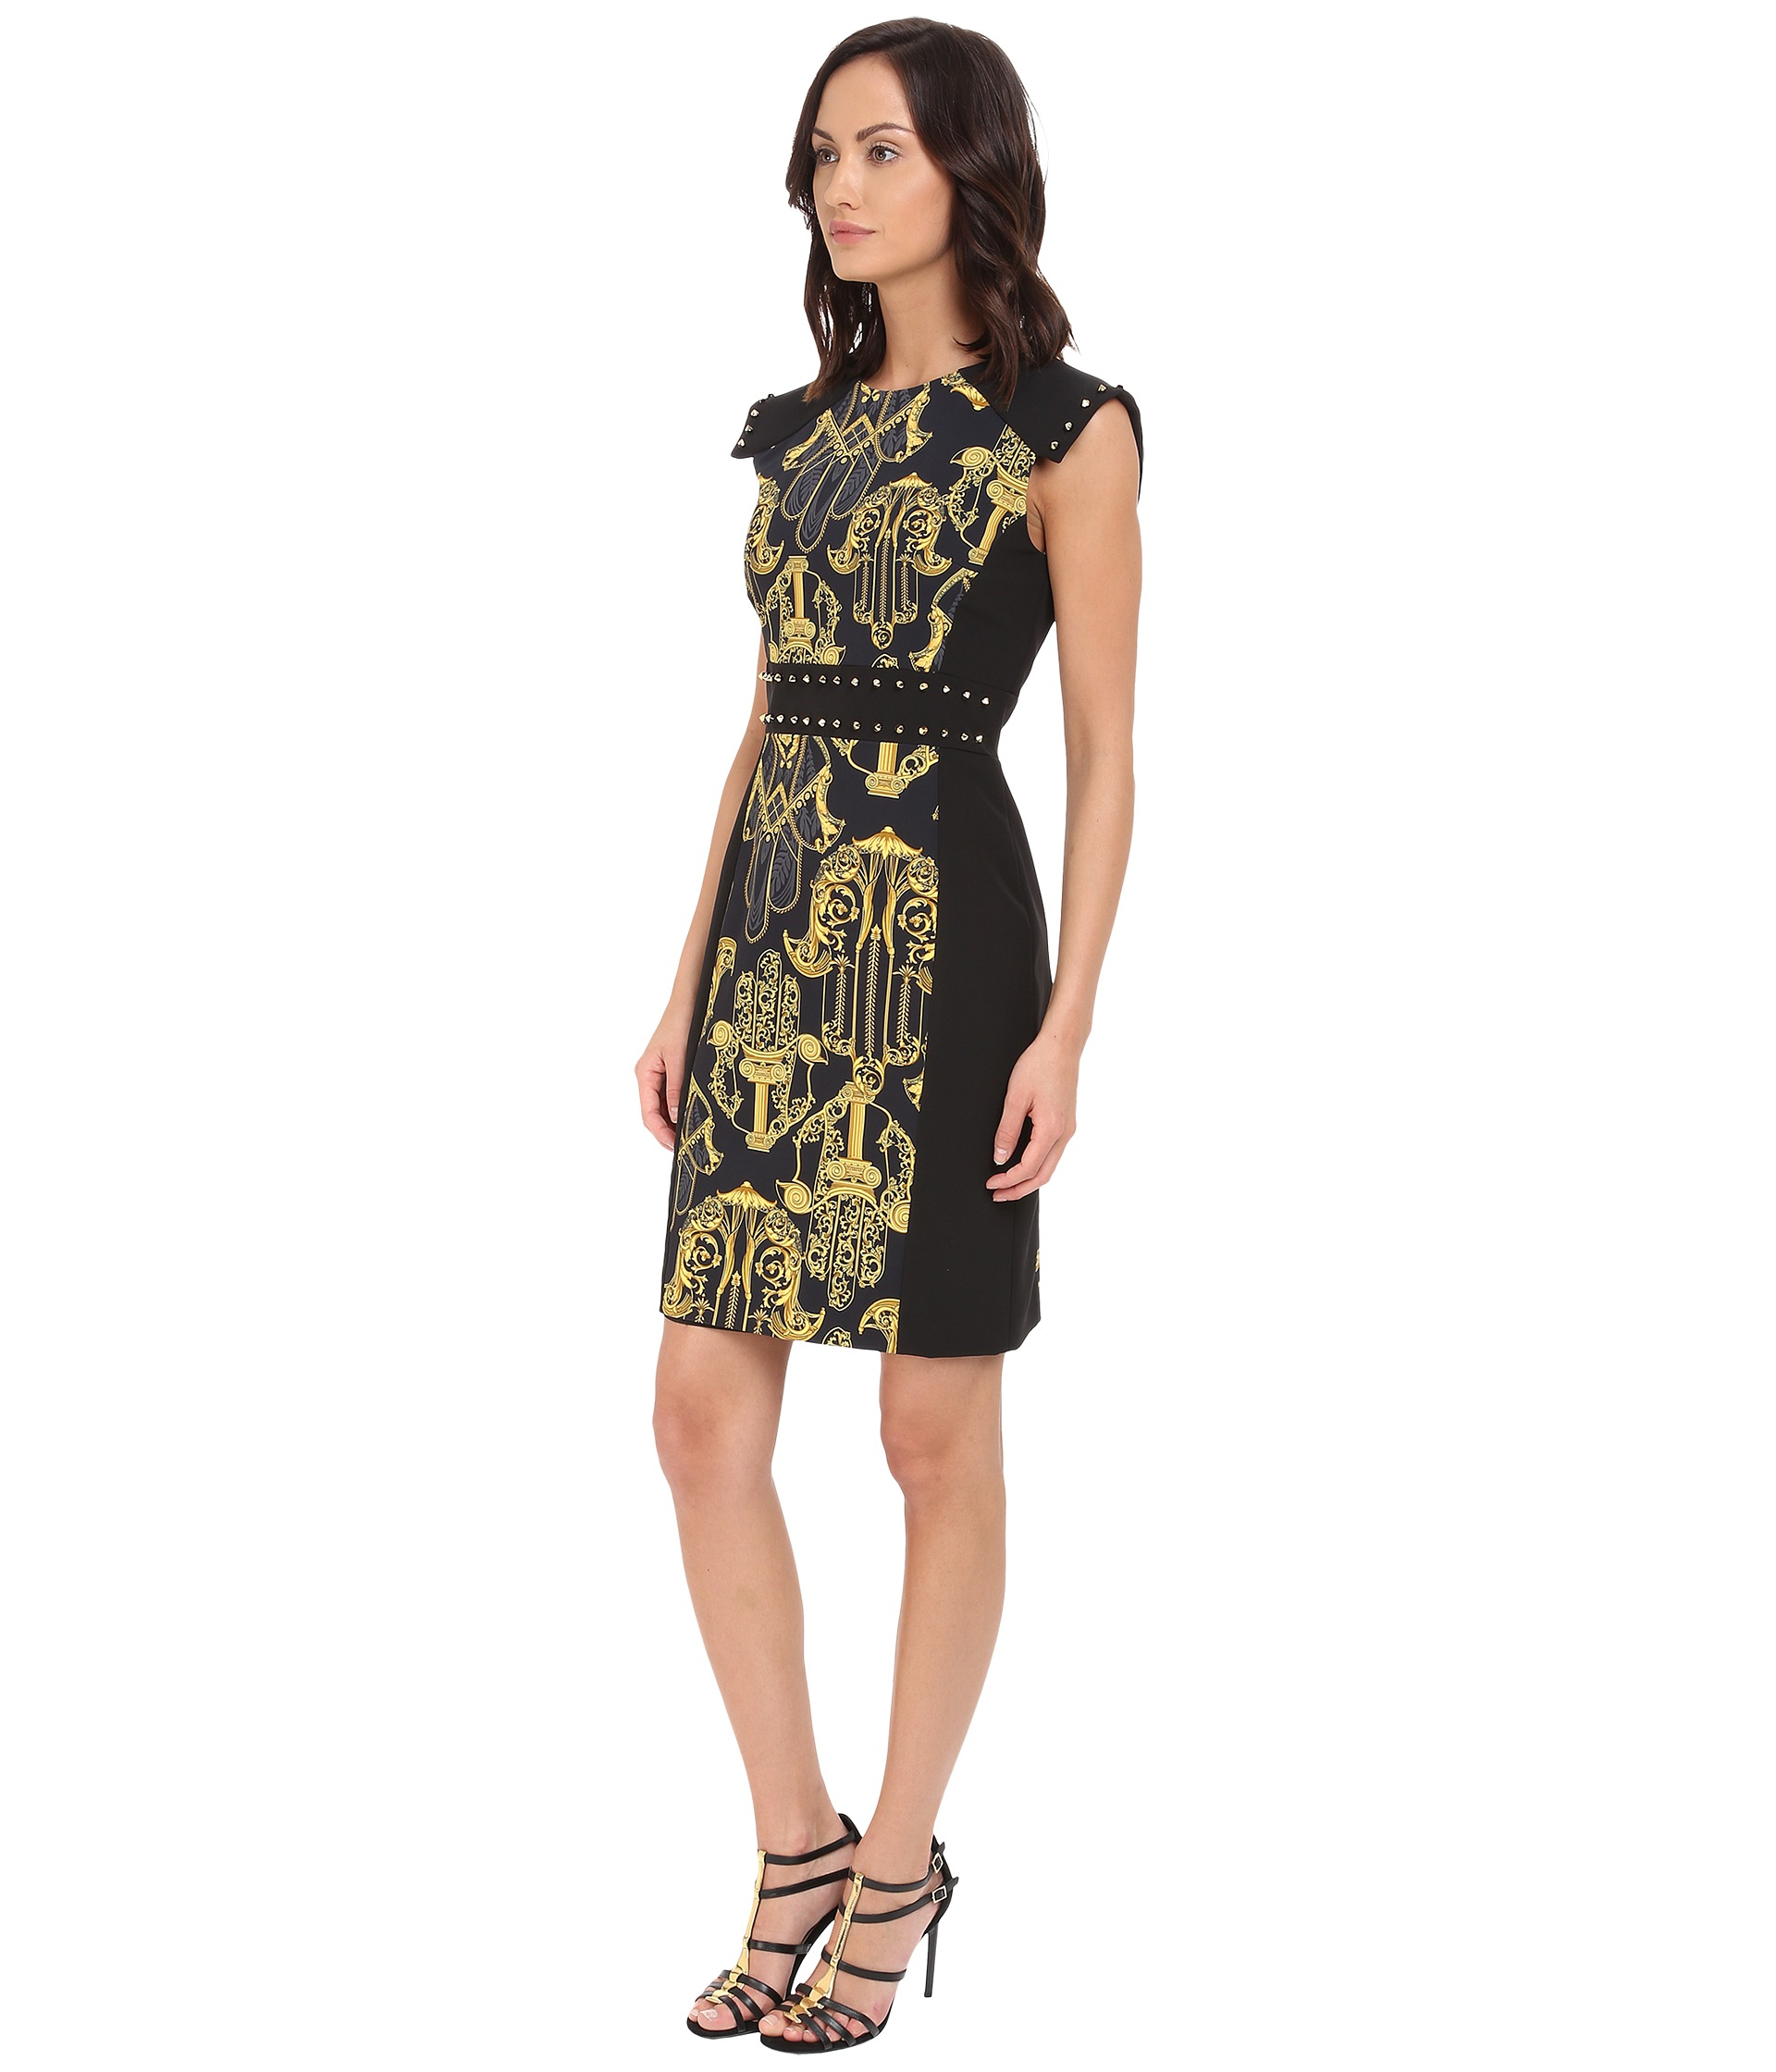 black and gold studded dress reviews: black and gold rhinestone dress women red dress with gold red and gold fringe dress black dress with gold studs black and silver mesh dress black dress with silver sequins. Related Categories Women's Clothing & Accessories. Dresses.